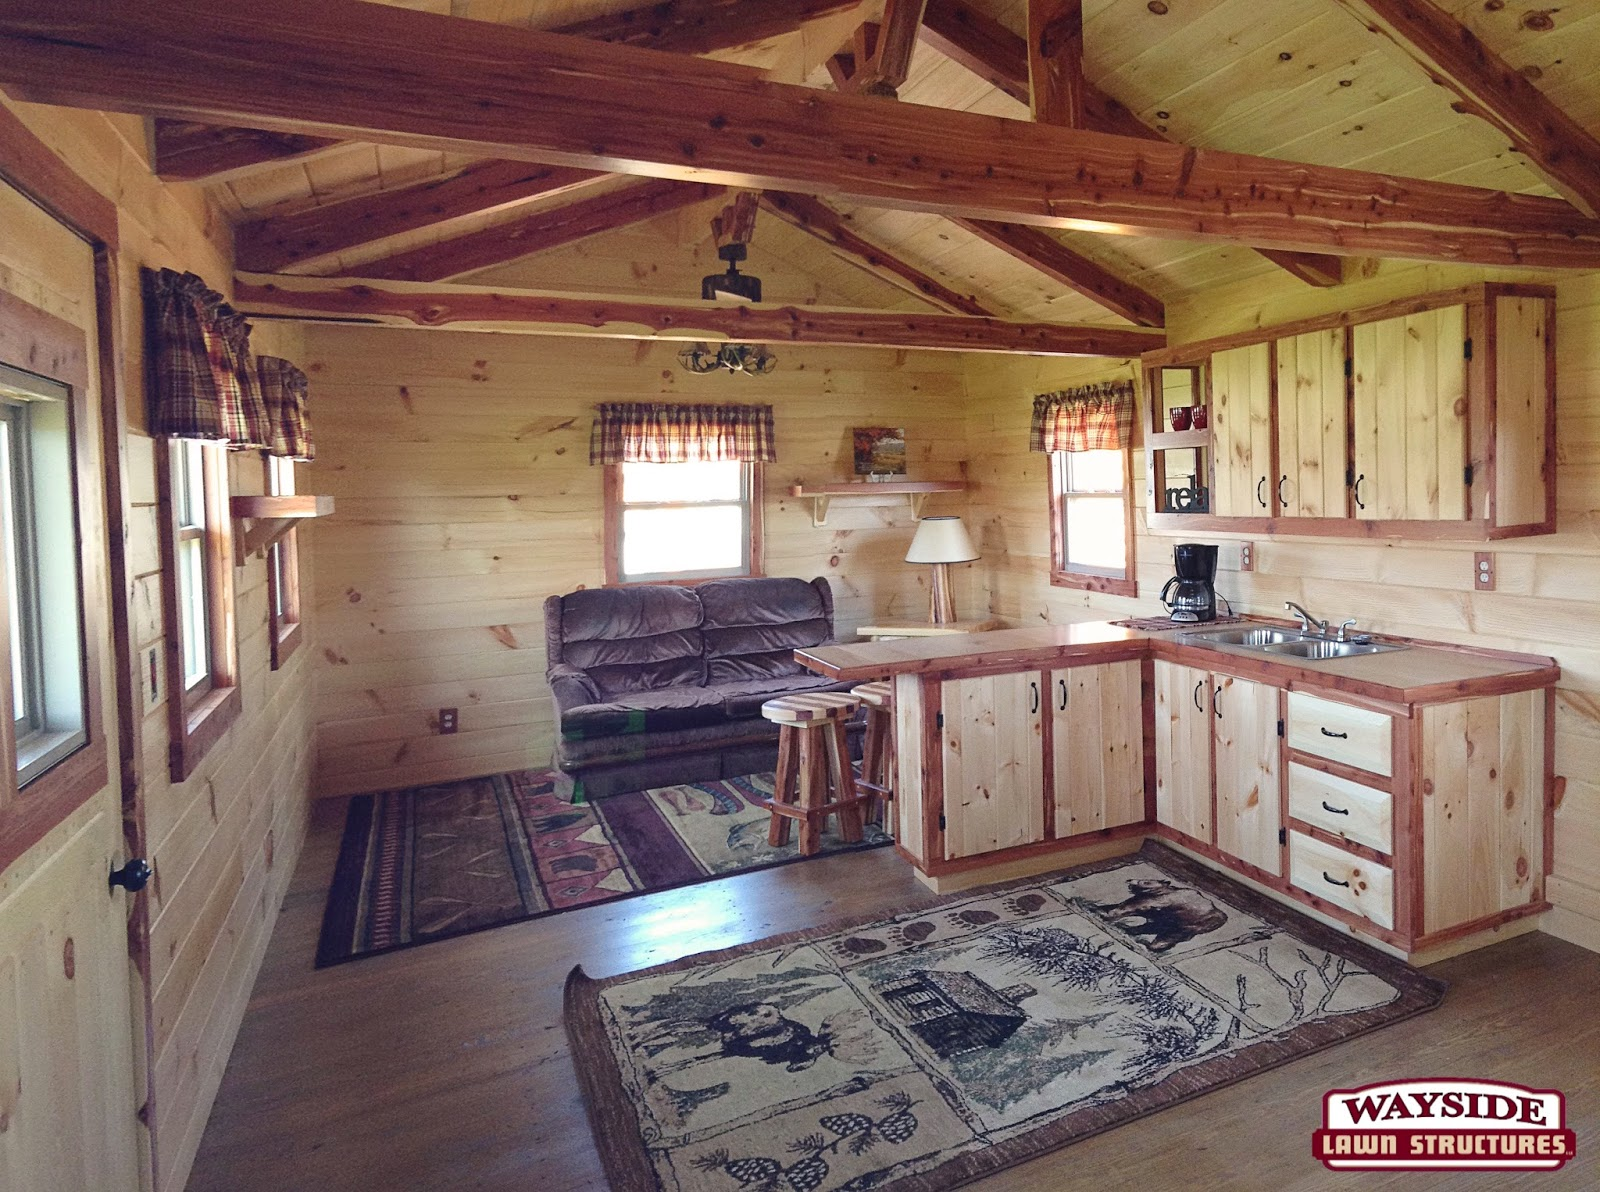 Hunting cabin interior - We Have Offered Some Great Choices In Recreational Log Cabins Which Range In Size From 10 X14 To 12 X32 In Our Pre Built Portable Cabins